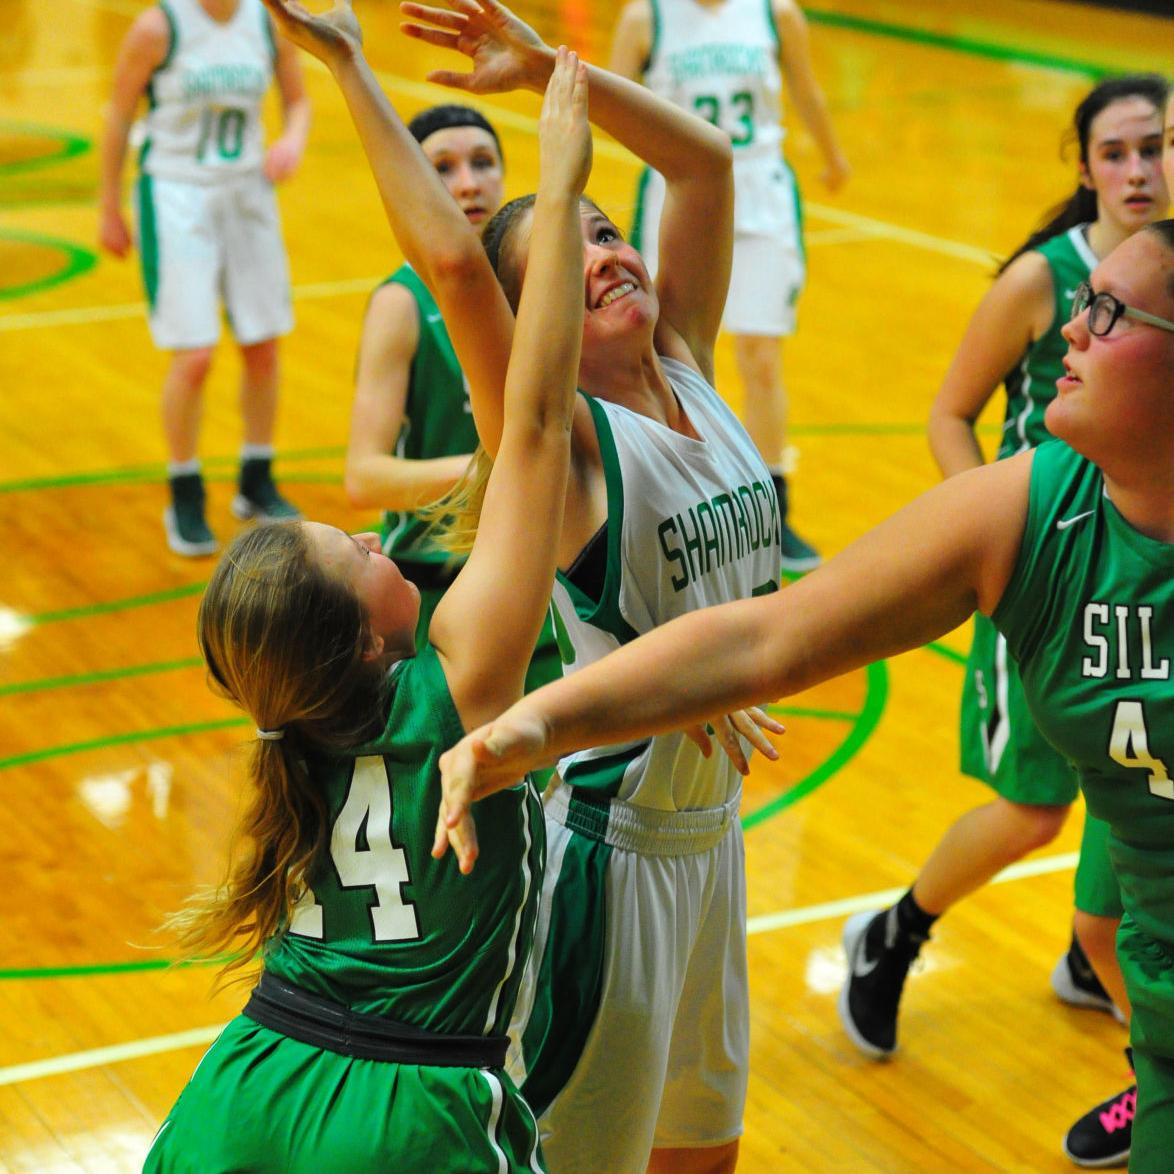 District Girls Basketball — New Haven vs. Silex